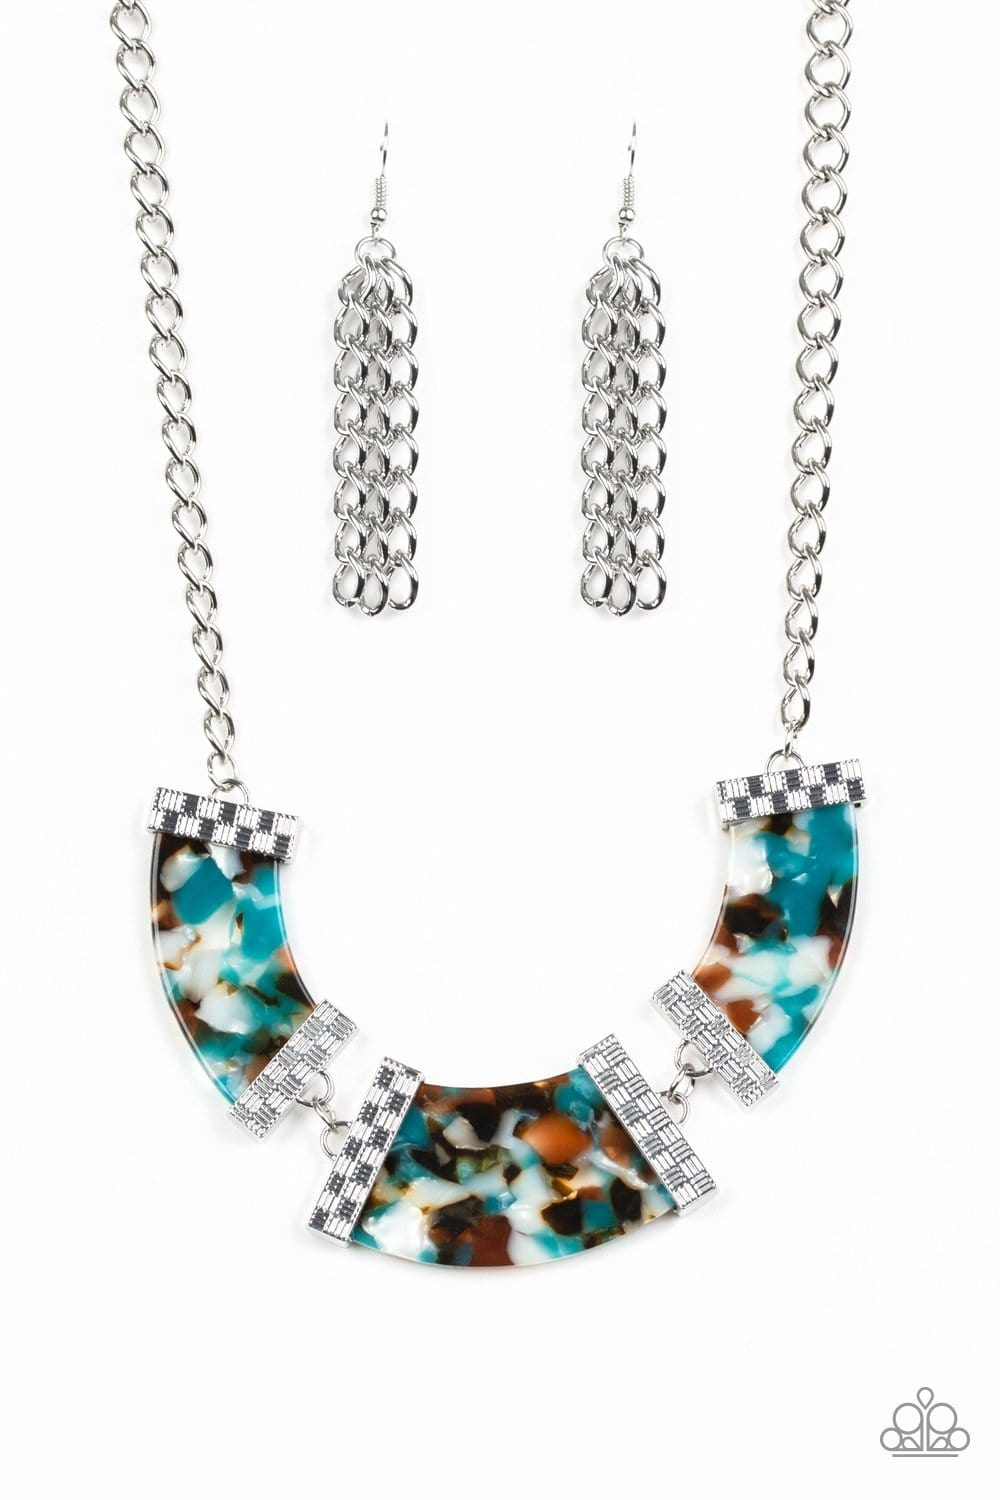 HAUTE-Blooded - Blue: Paparazzi Accessories - Jewels N' Thingz Boutique